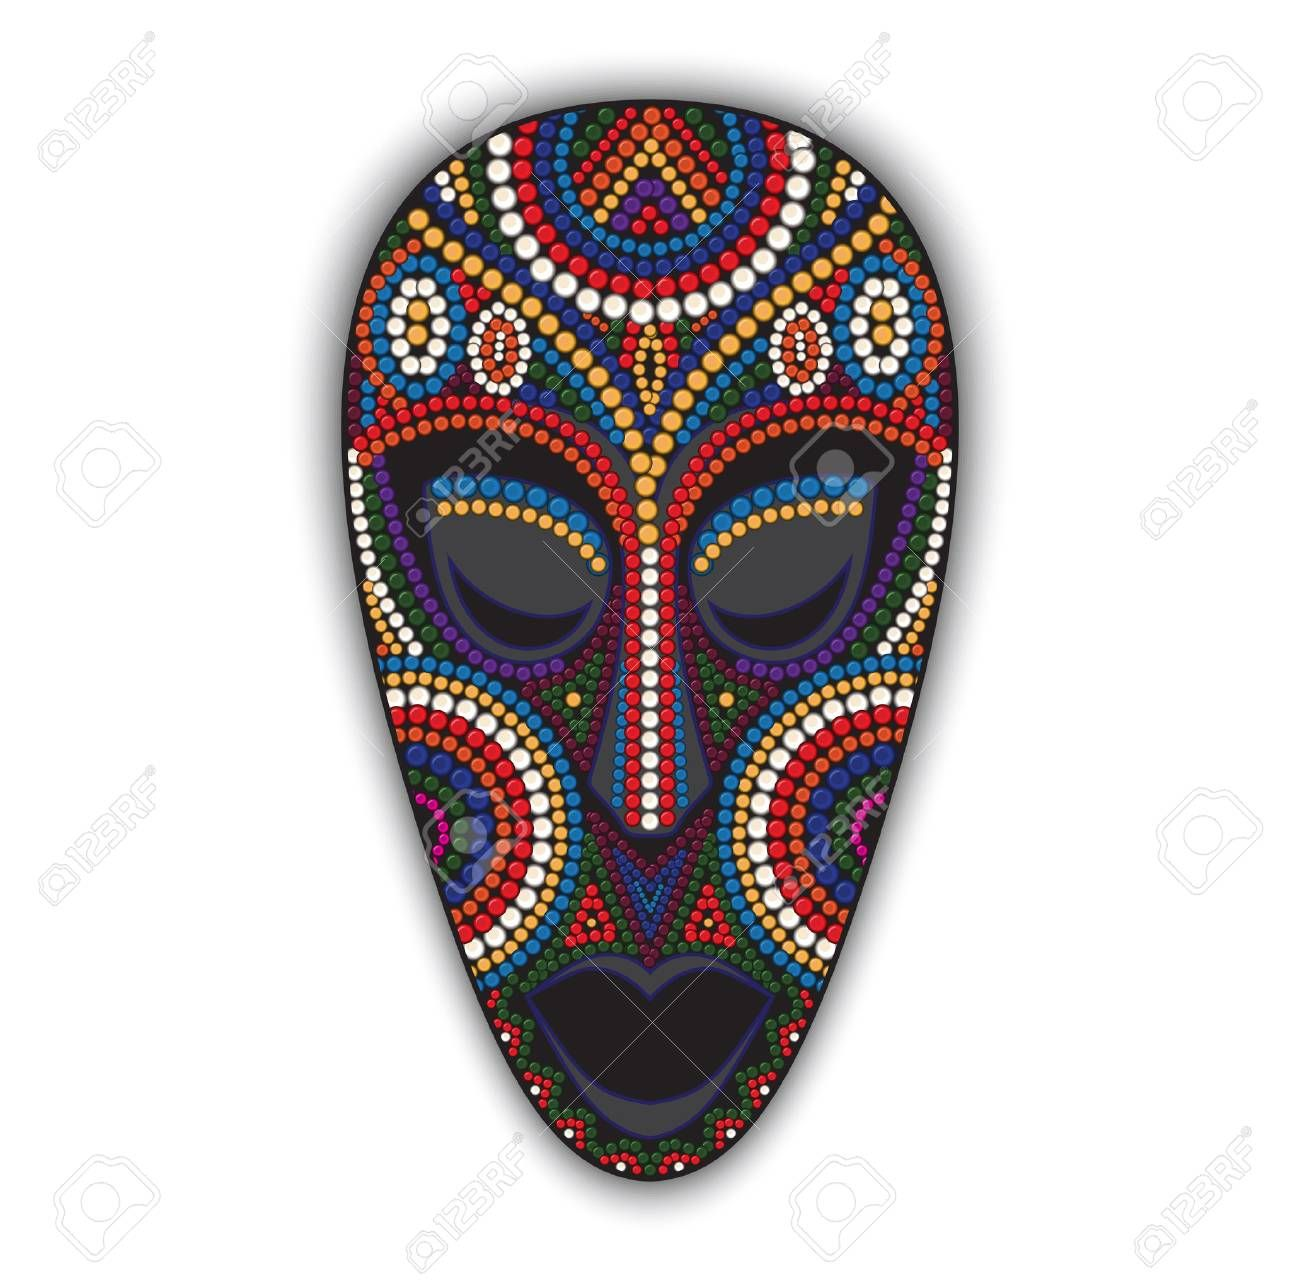 African cultural mask clipart clip art freeuse library Stock Vector | Sam | African masks, Mask painting, Ceramic mask clip art freeuse library